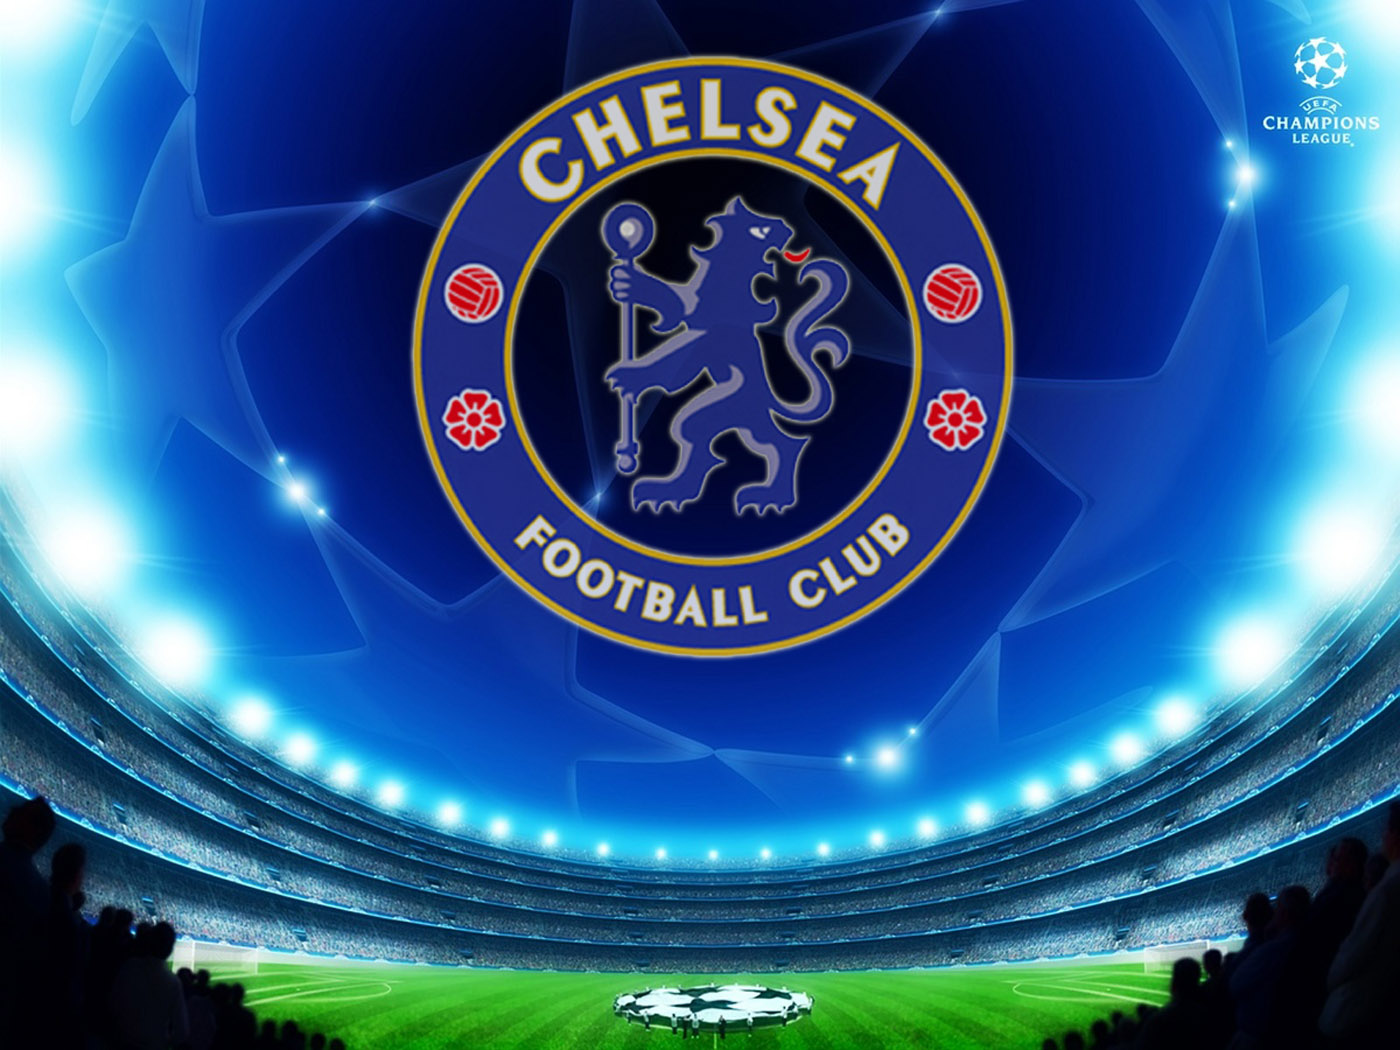 Chelsea Football Club HD Wallpapers 2013-2014 - All About Football